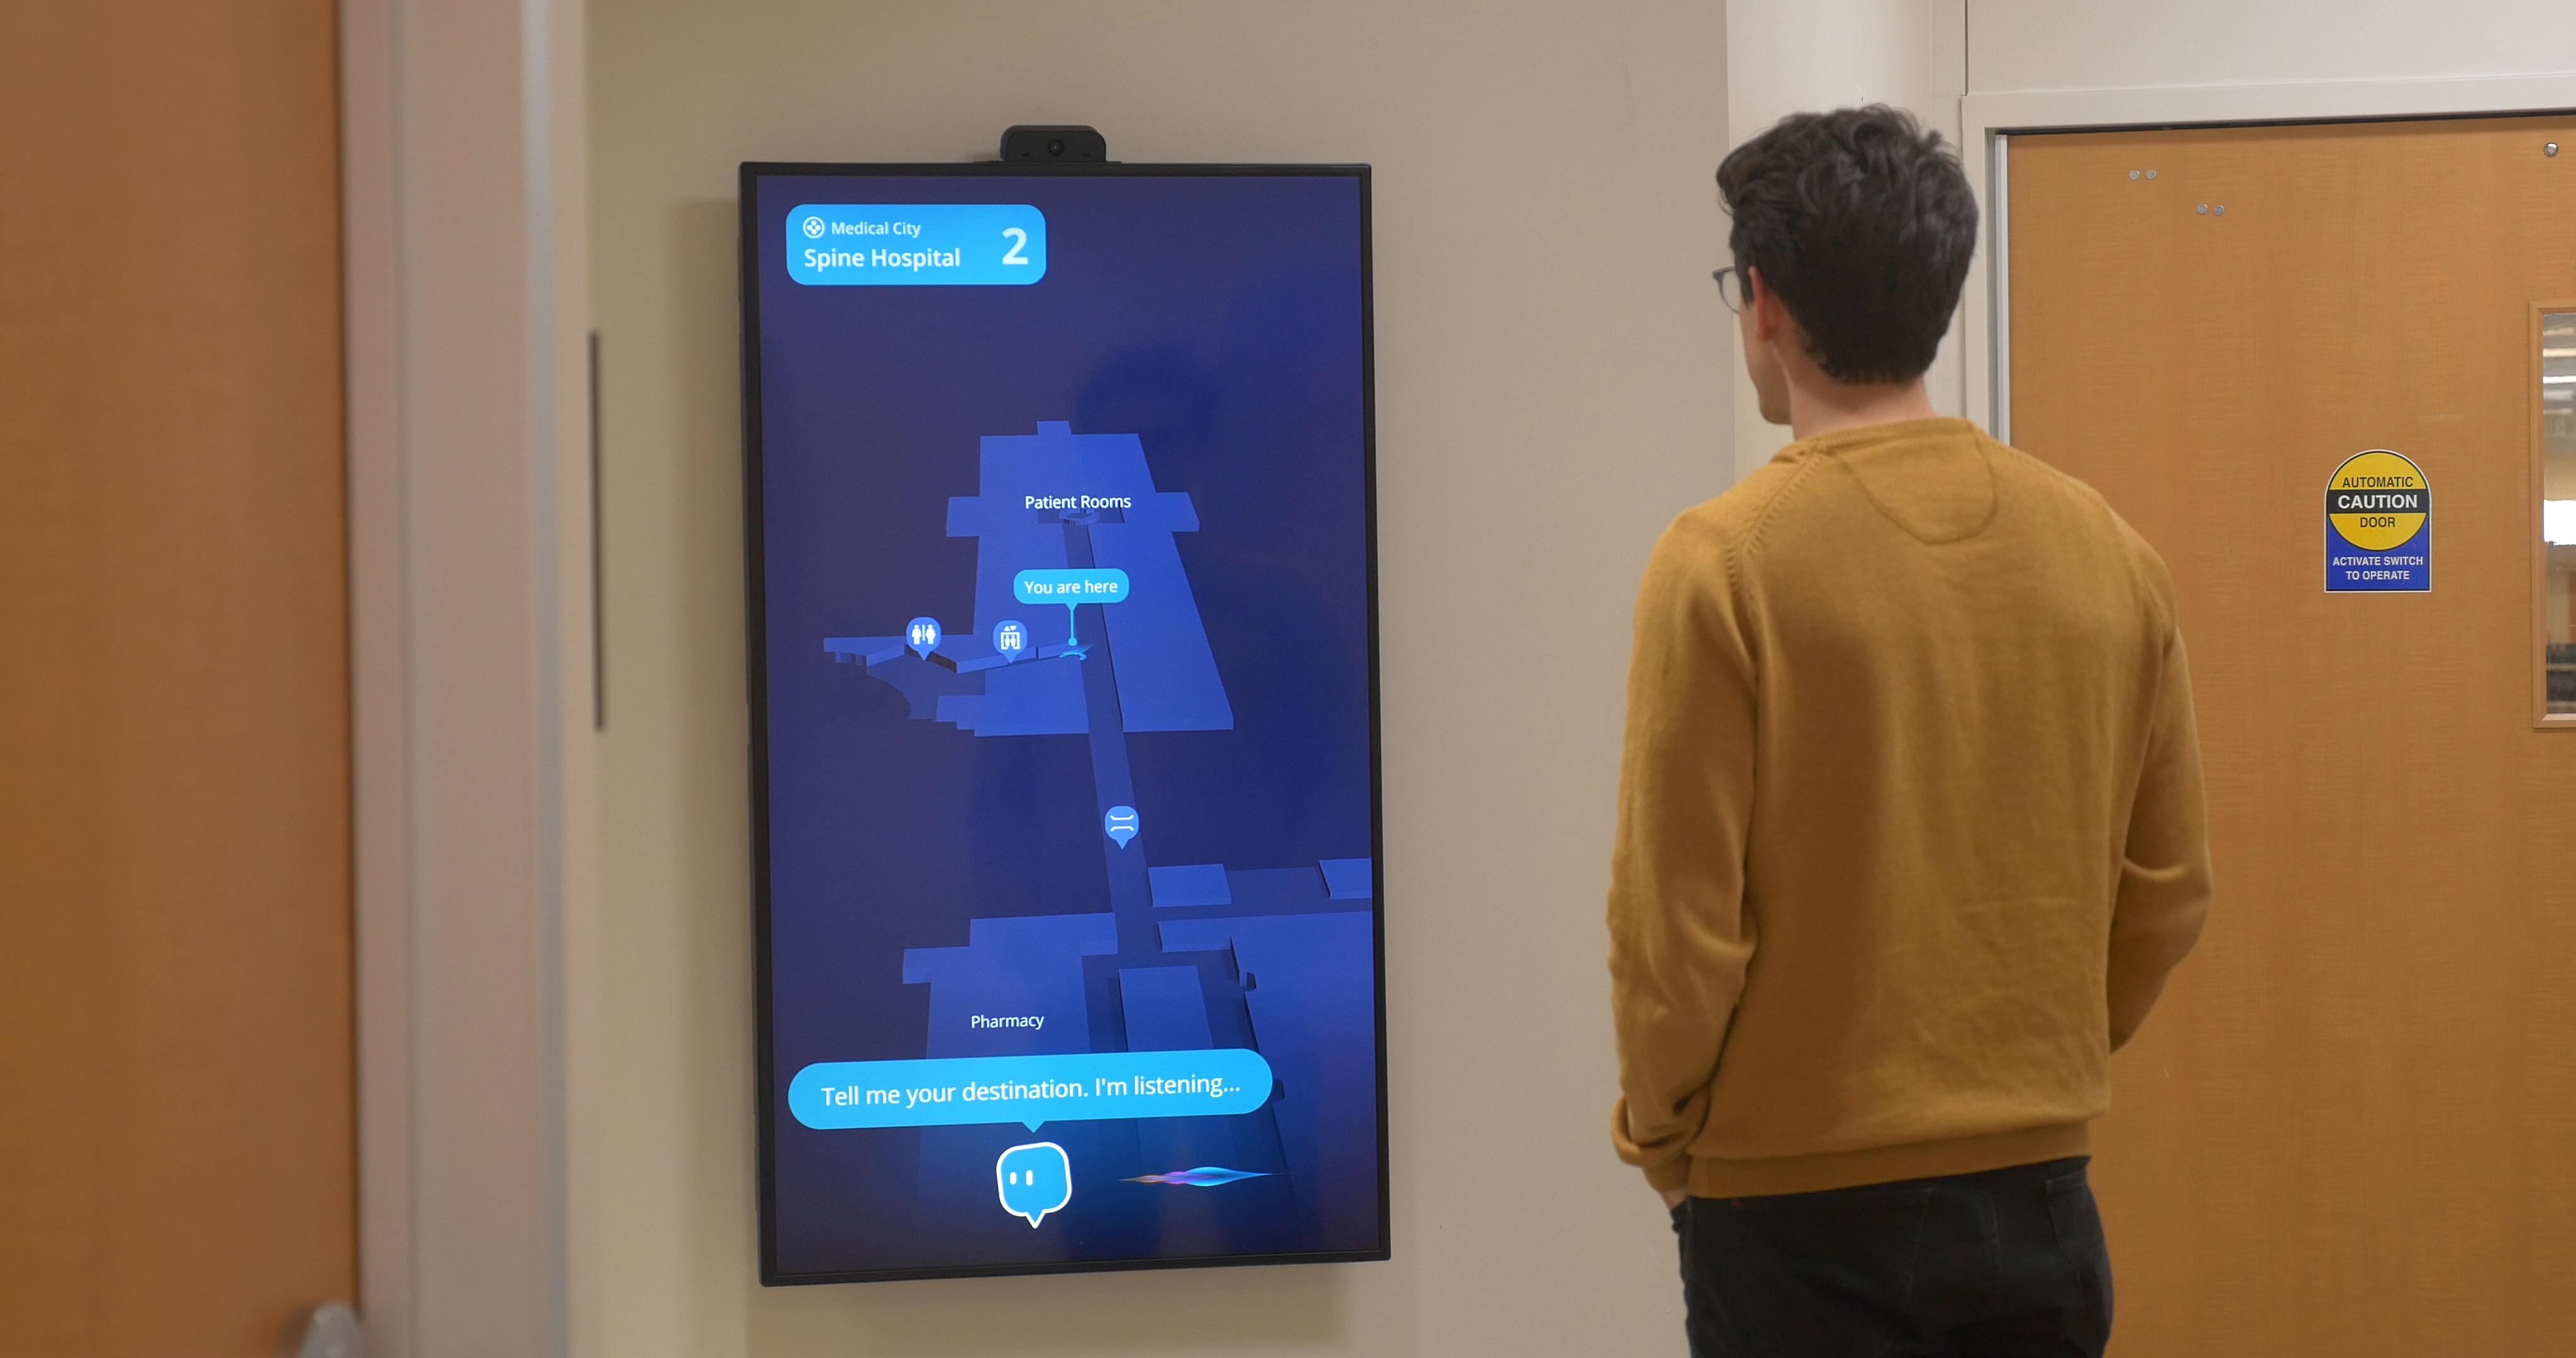 A person looking at a screen showing a virtual assistant and a map